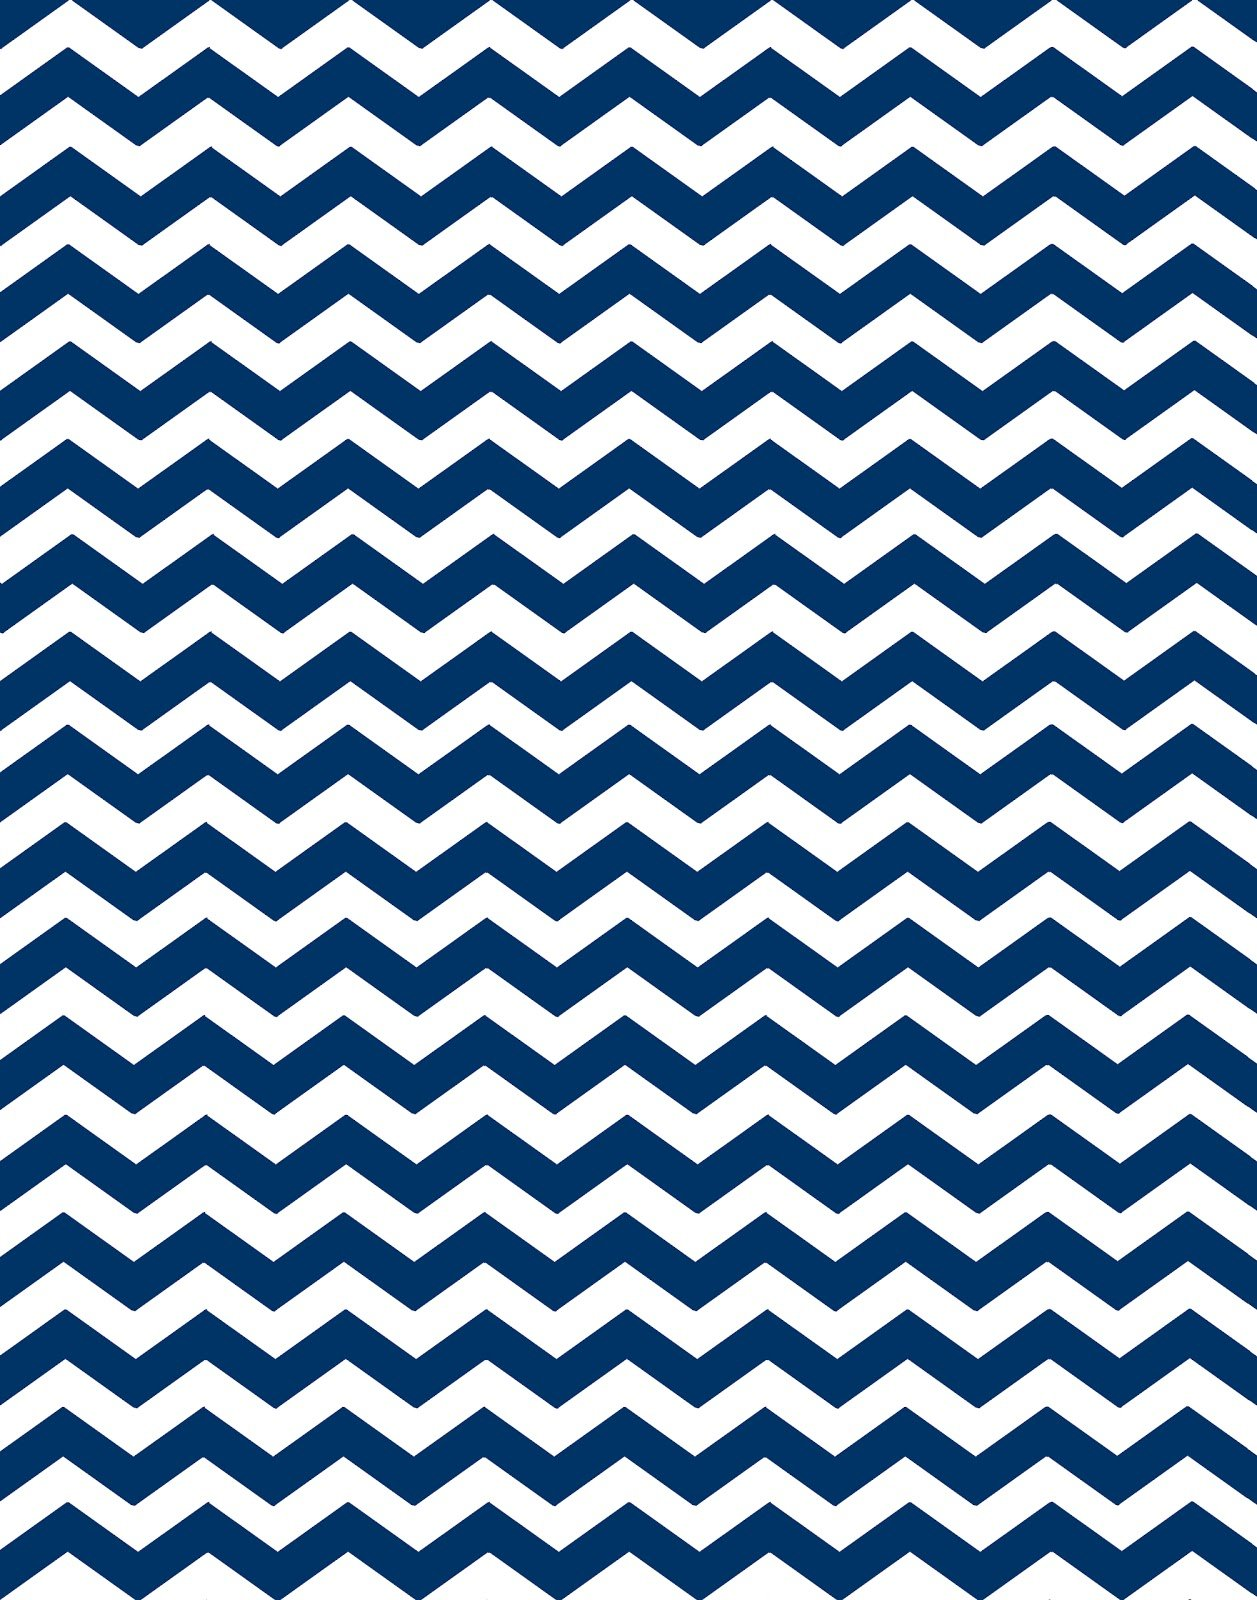 Blue And White Chevron Wallpaper Wallpapersafari